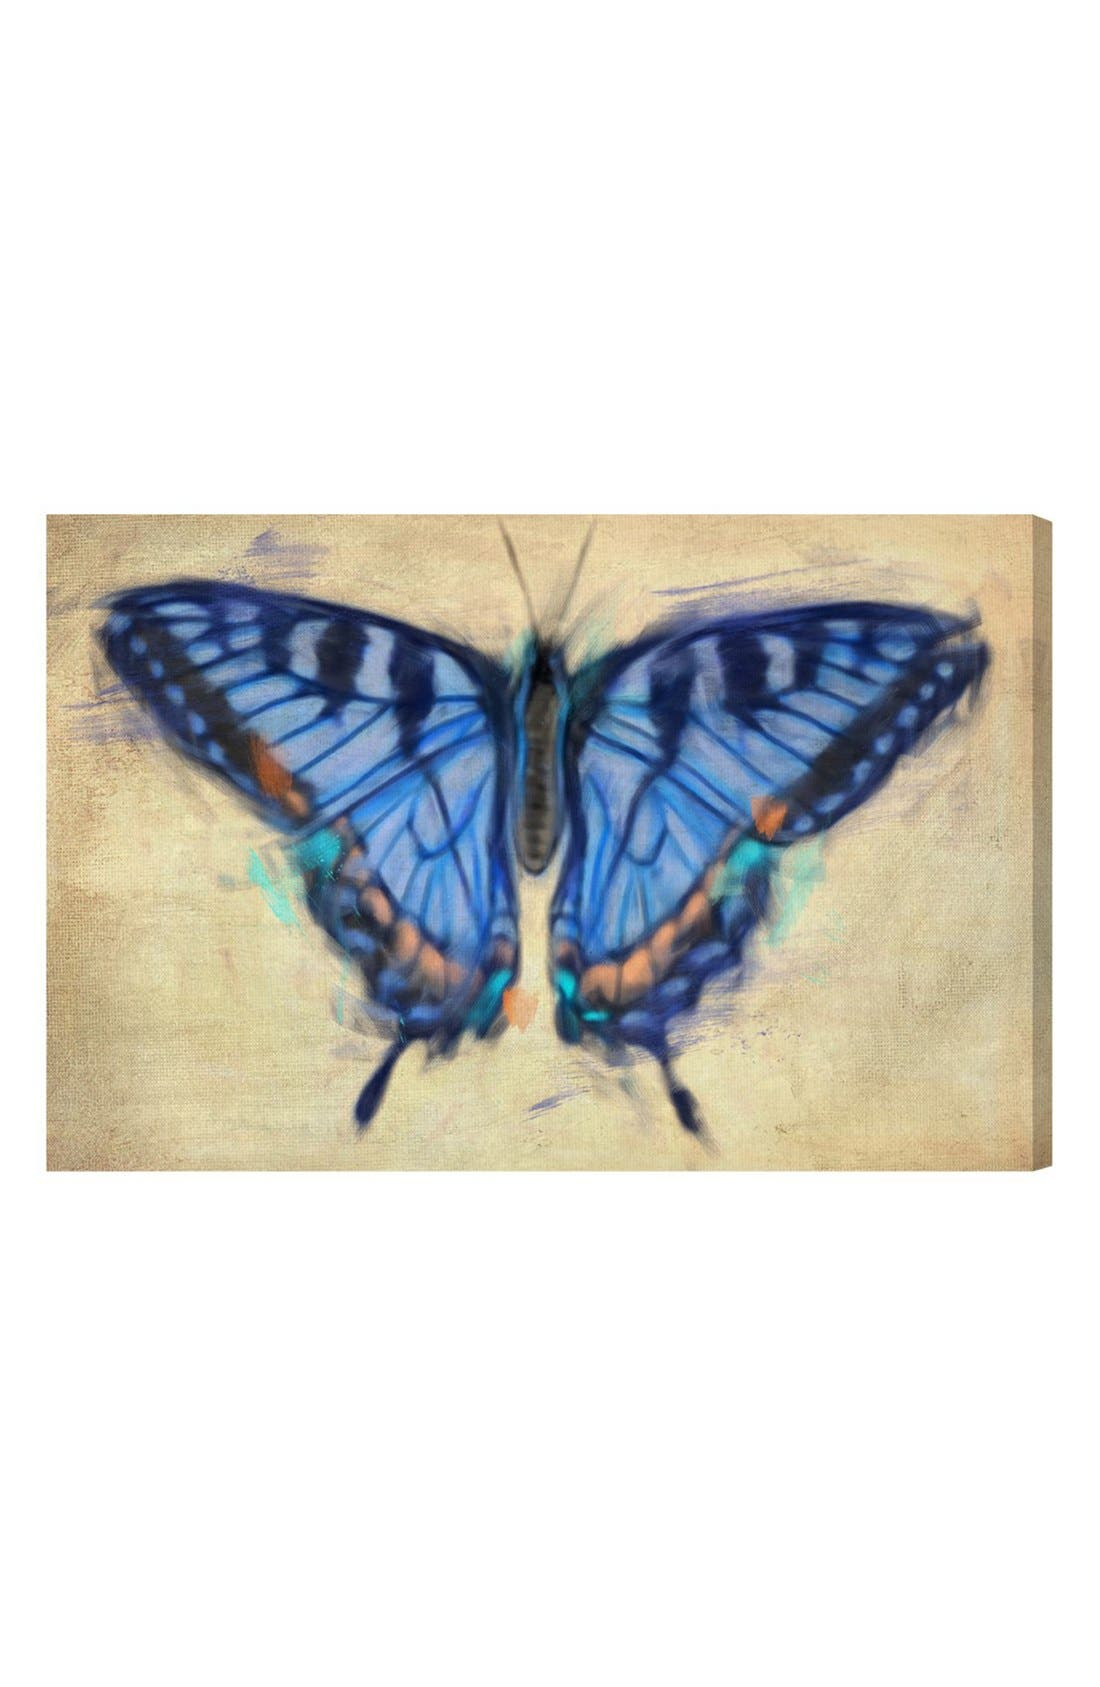 'Blissful Butterfly' Canvas Wall Art,                             Main thumbnail 1, color,                             Blue